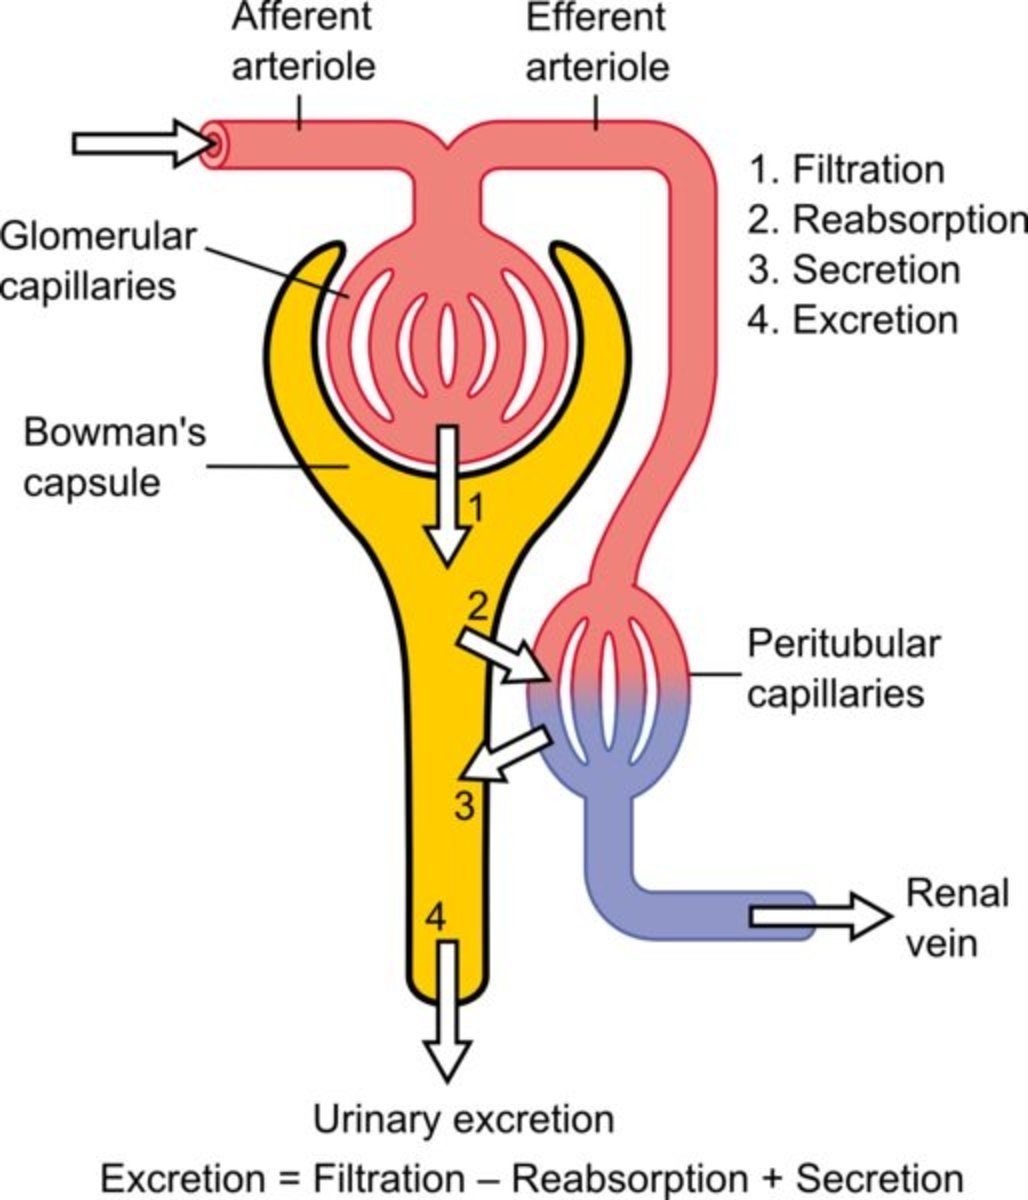 nephron system The urinary system is the excretory system of the body the nephron does all the work of the urinary system find out how the nephron works.